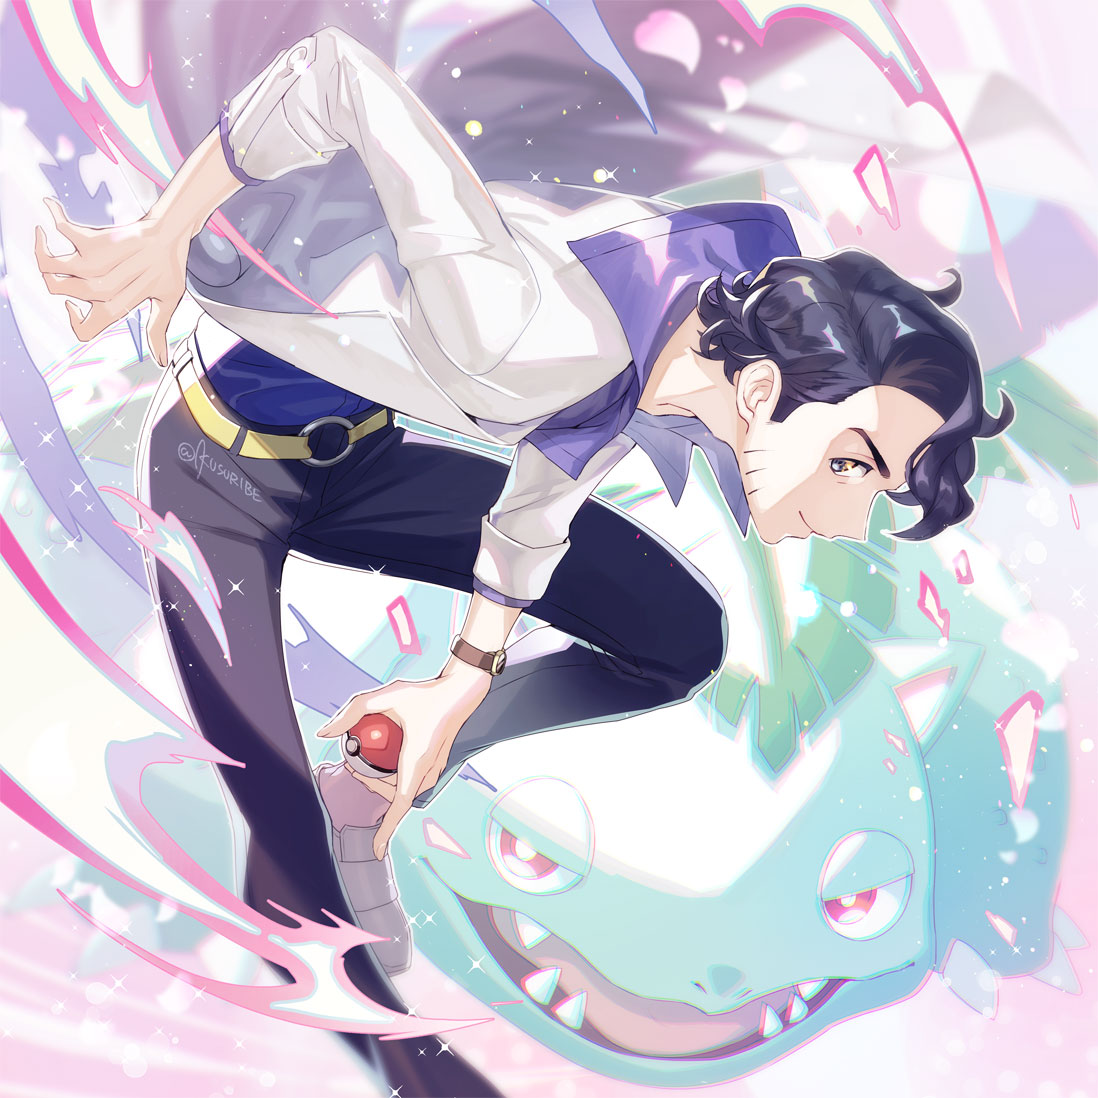 1boy augustine_sycamore black_hair black_pants closed_mouth collared_shirt commentary_request energy gen_1_pokemon grey_footwear holding holding_poke_ball kusuribe labcoat male_focus pants poke_ball poke_ball_(basic) pokemon pokemon_(game) pokemon_xy purple_shirt shiny shiny_hair shirt shoes signature sleeves_rolled_up smile sparkle venusaur watch watch yellow_belt